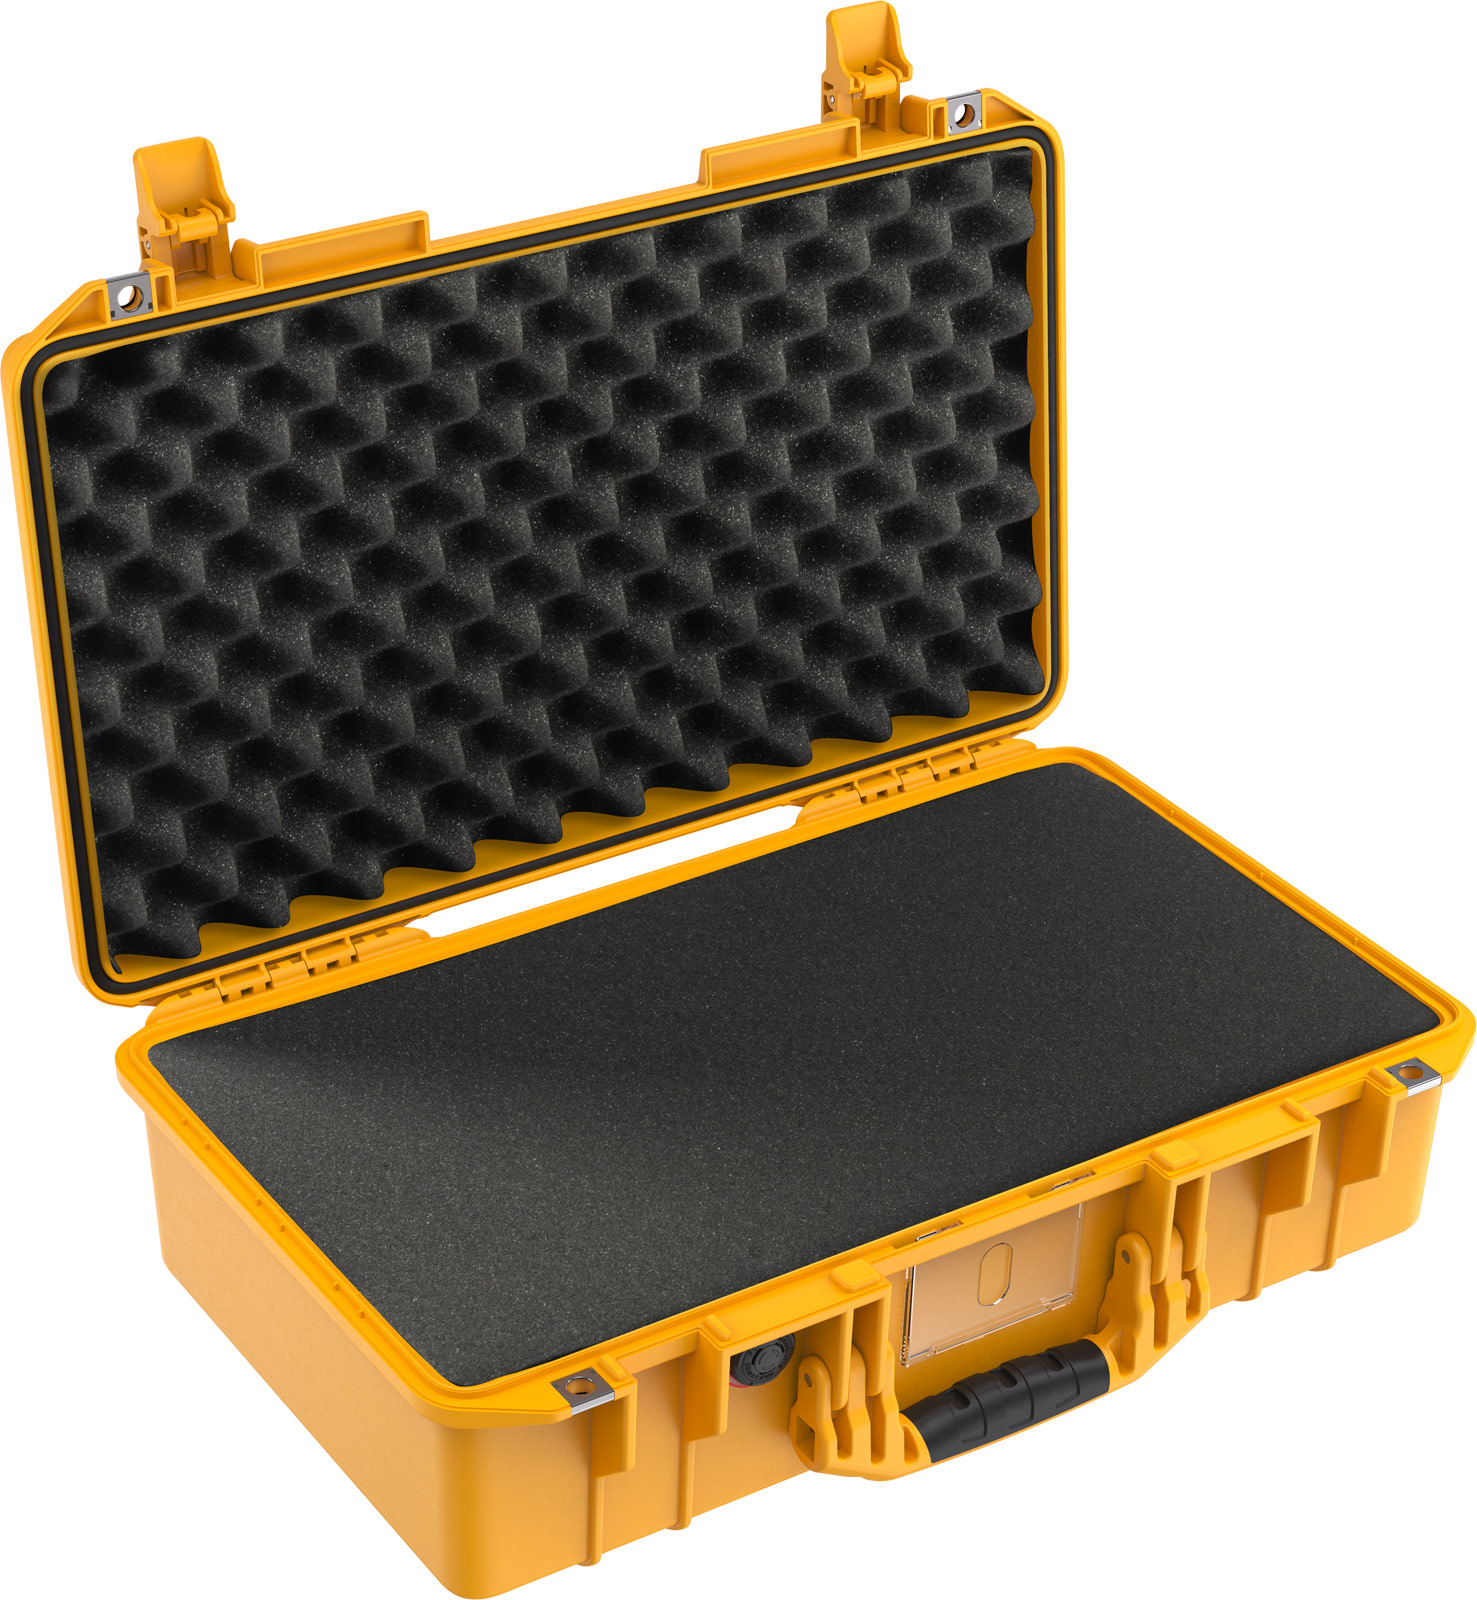 buy pelican air 1525 shop yellow camera case